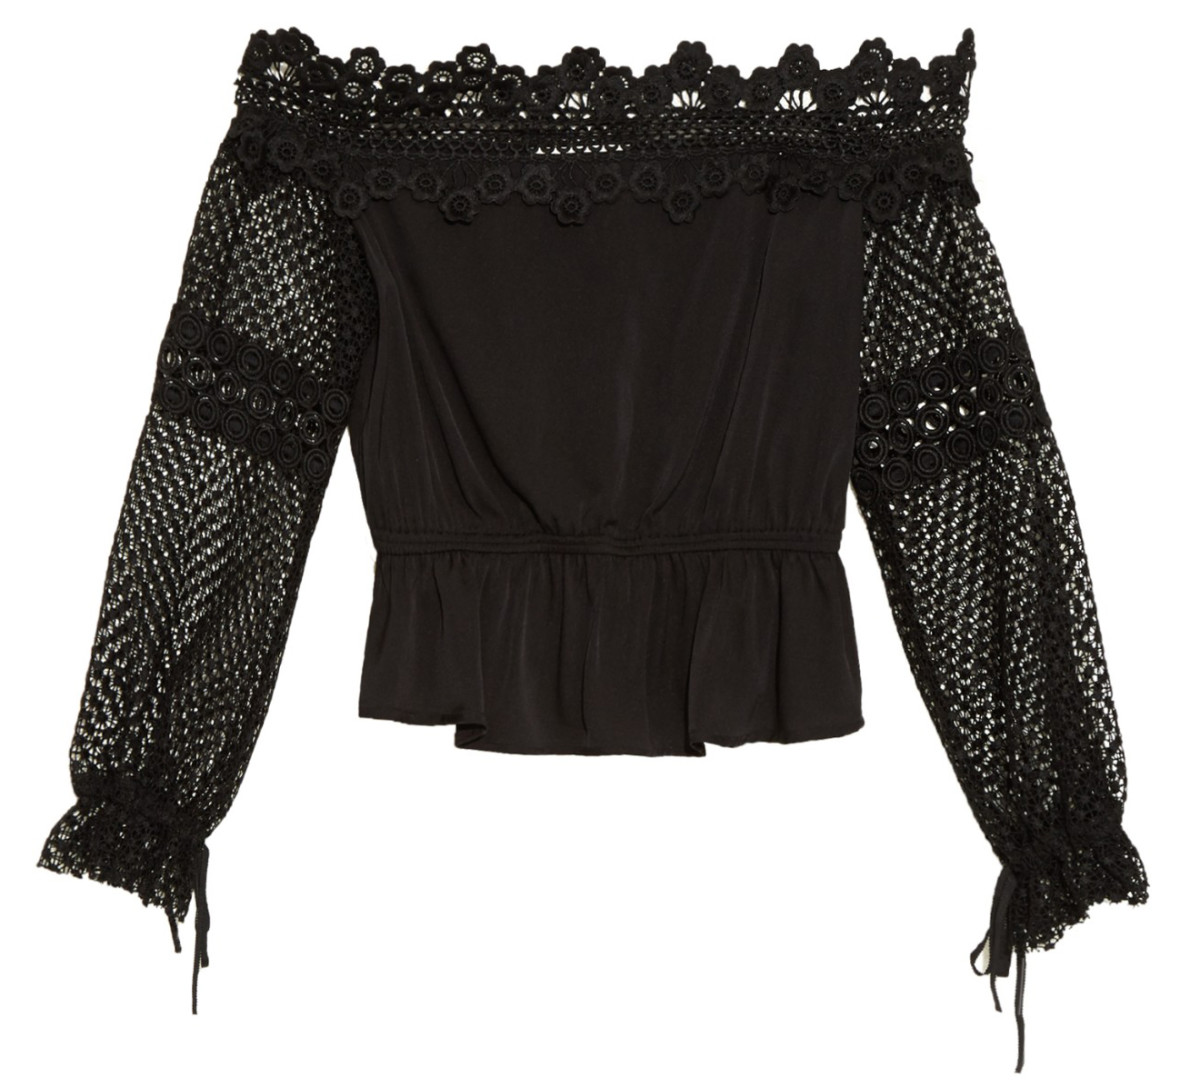 Self Portrait lace-trimmed top, $240, available at Matches Fashion; $340, available at Neiman Marcus and Bergdorf Goodman.